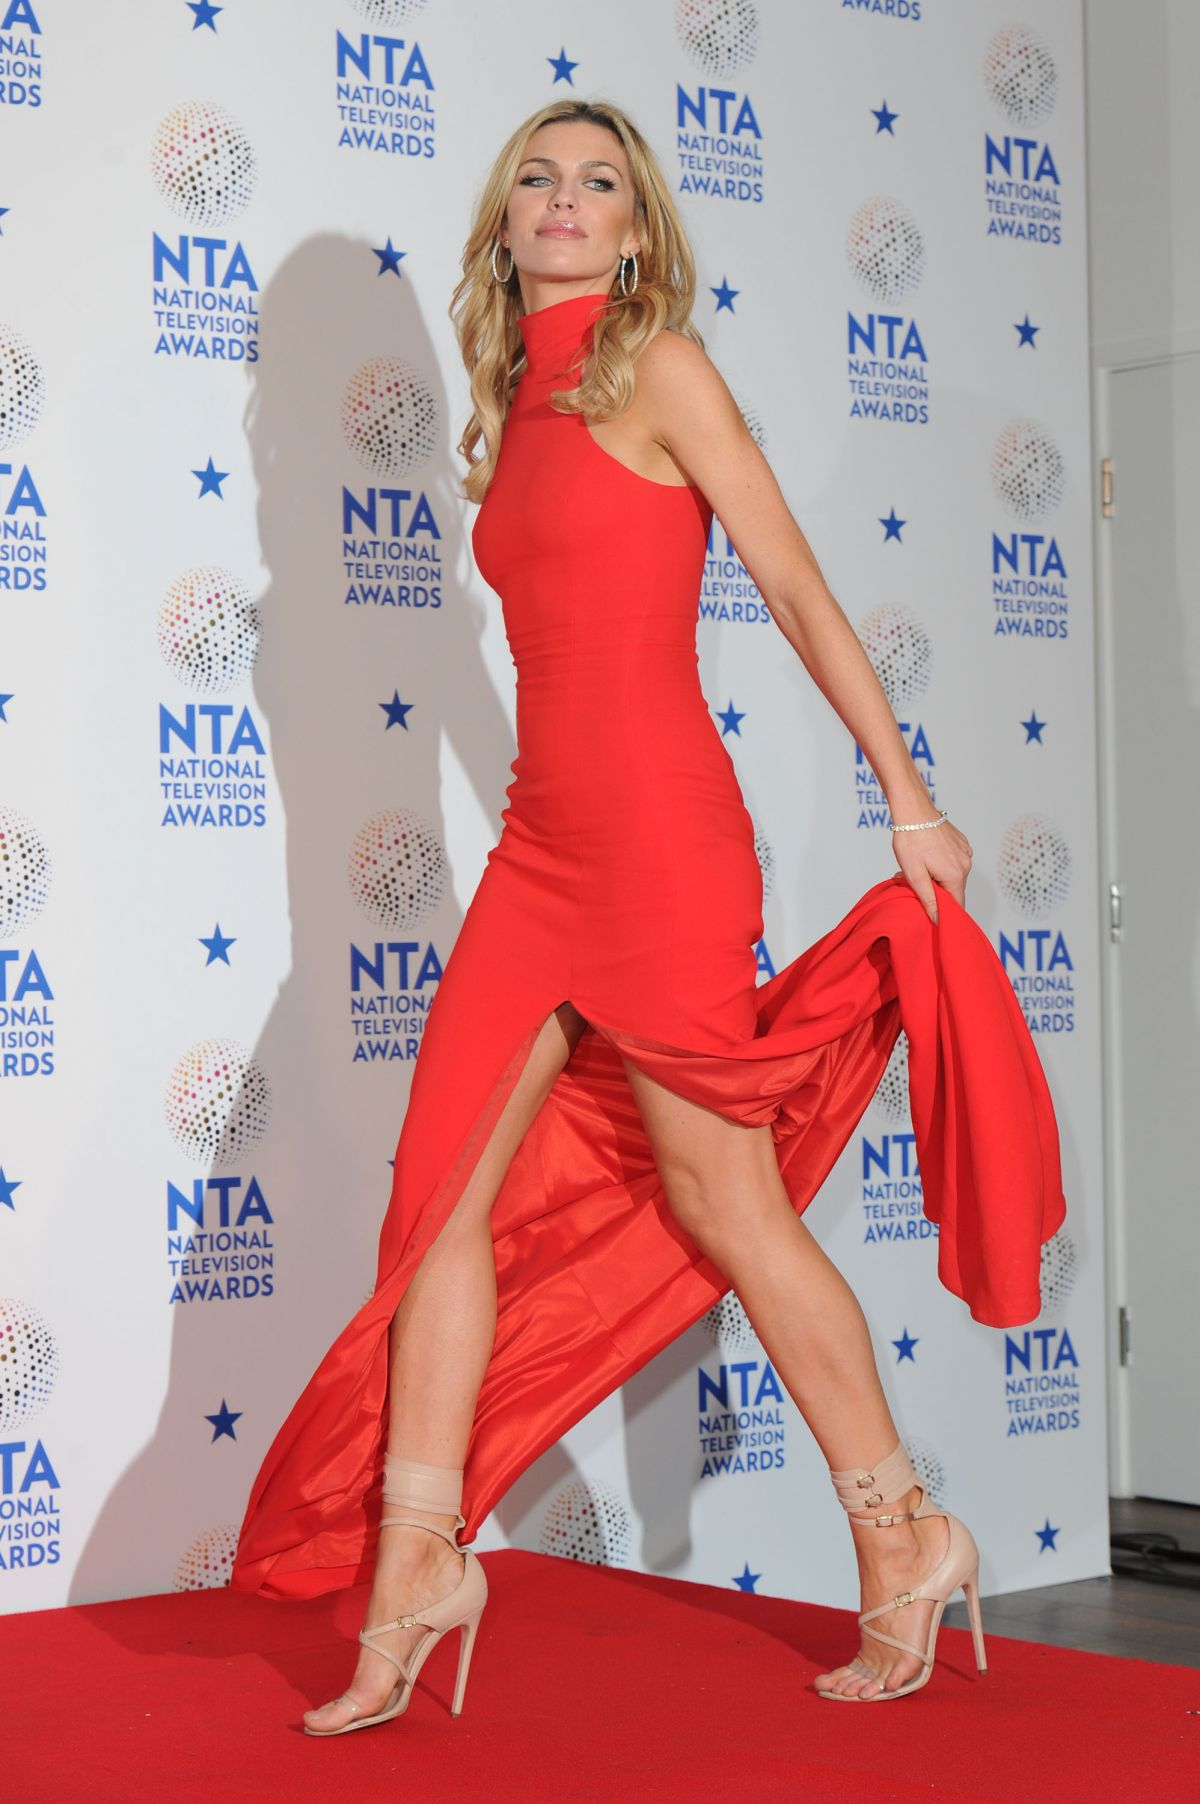 ABIGAIL ABBEY CLANCY at 2014 National Television Awards in London